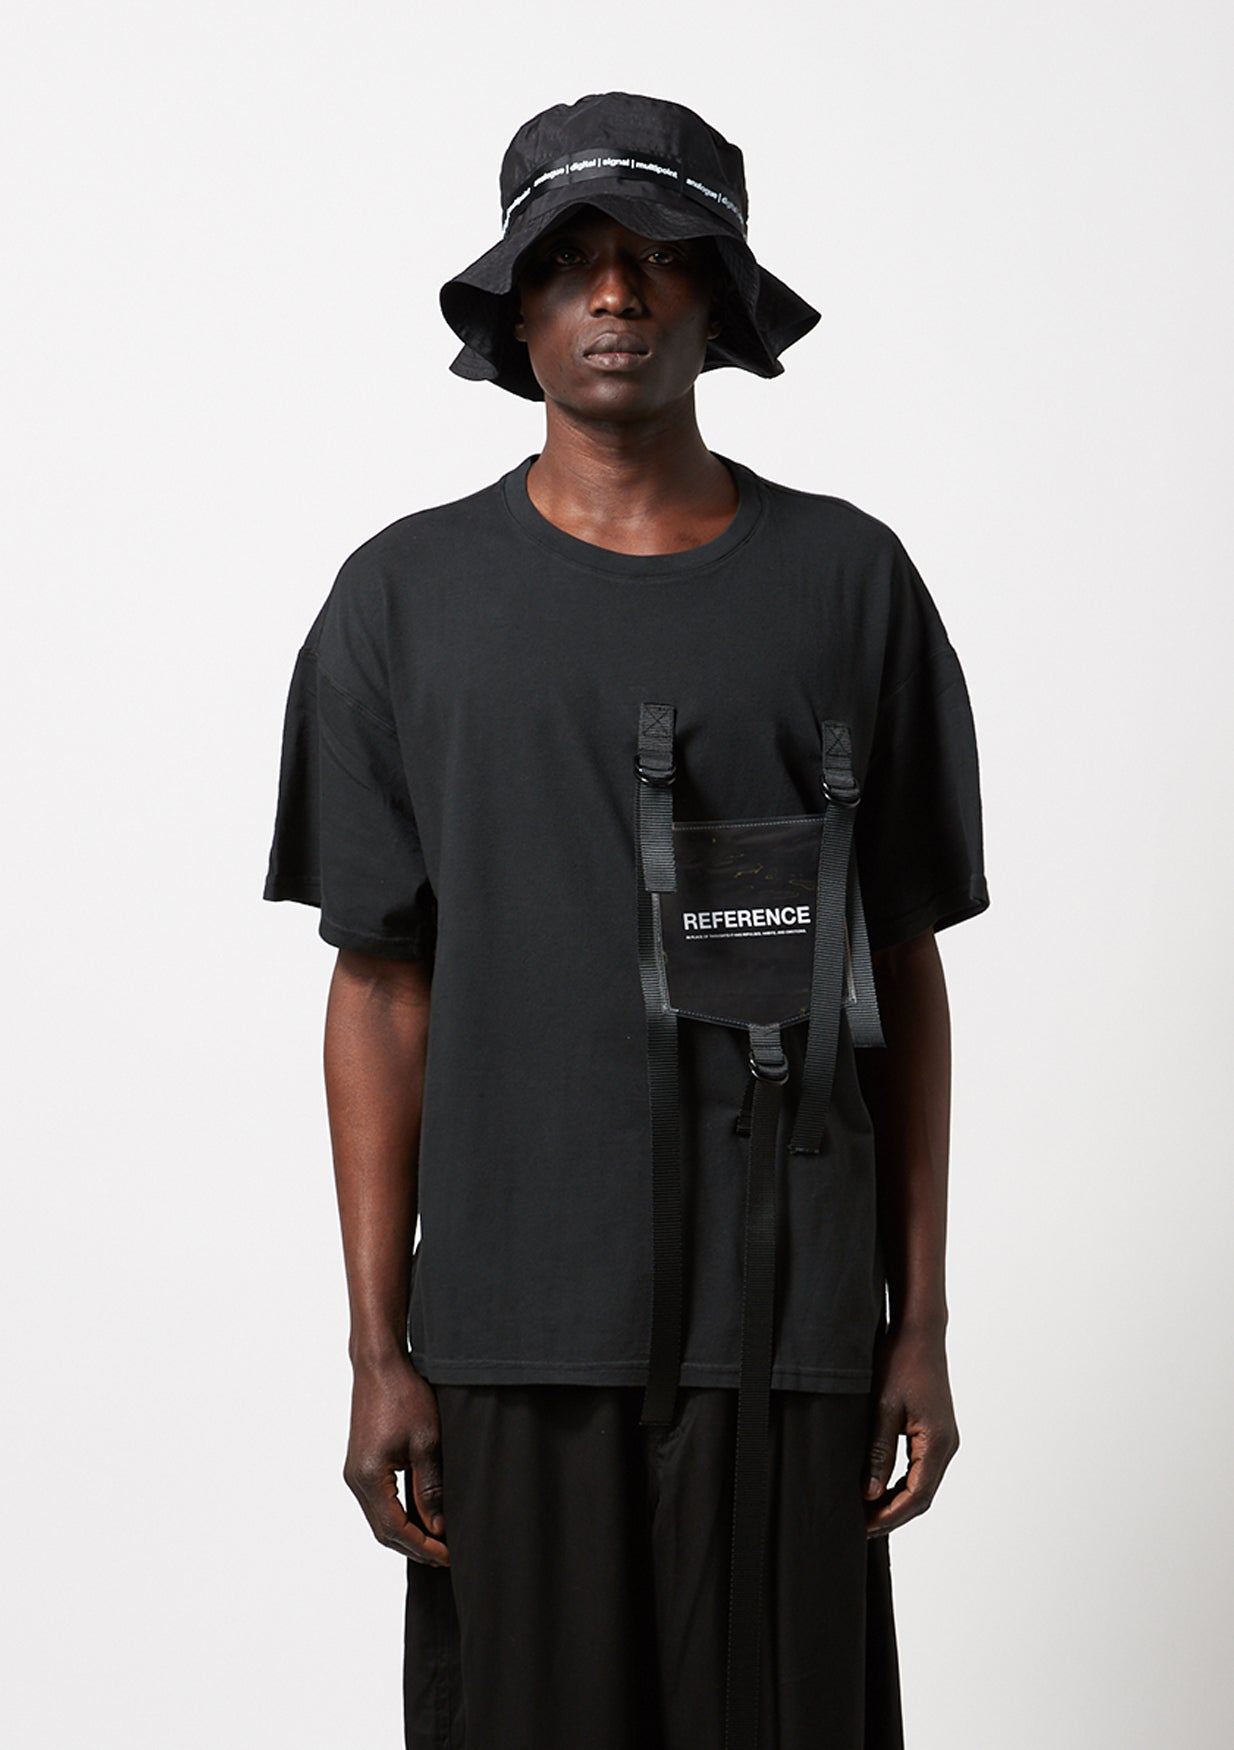 Reference - Strap Bind T-shirt